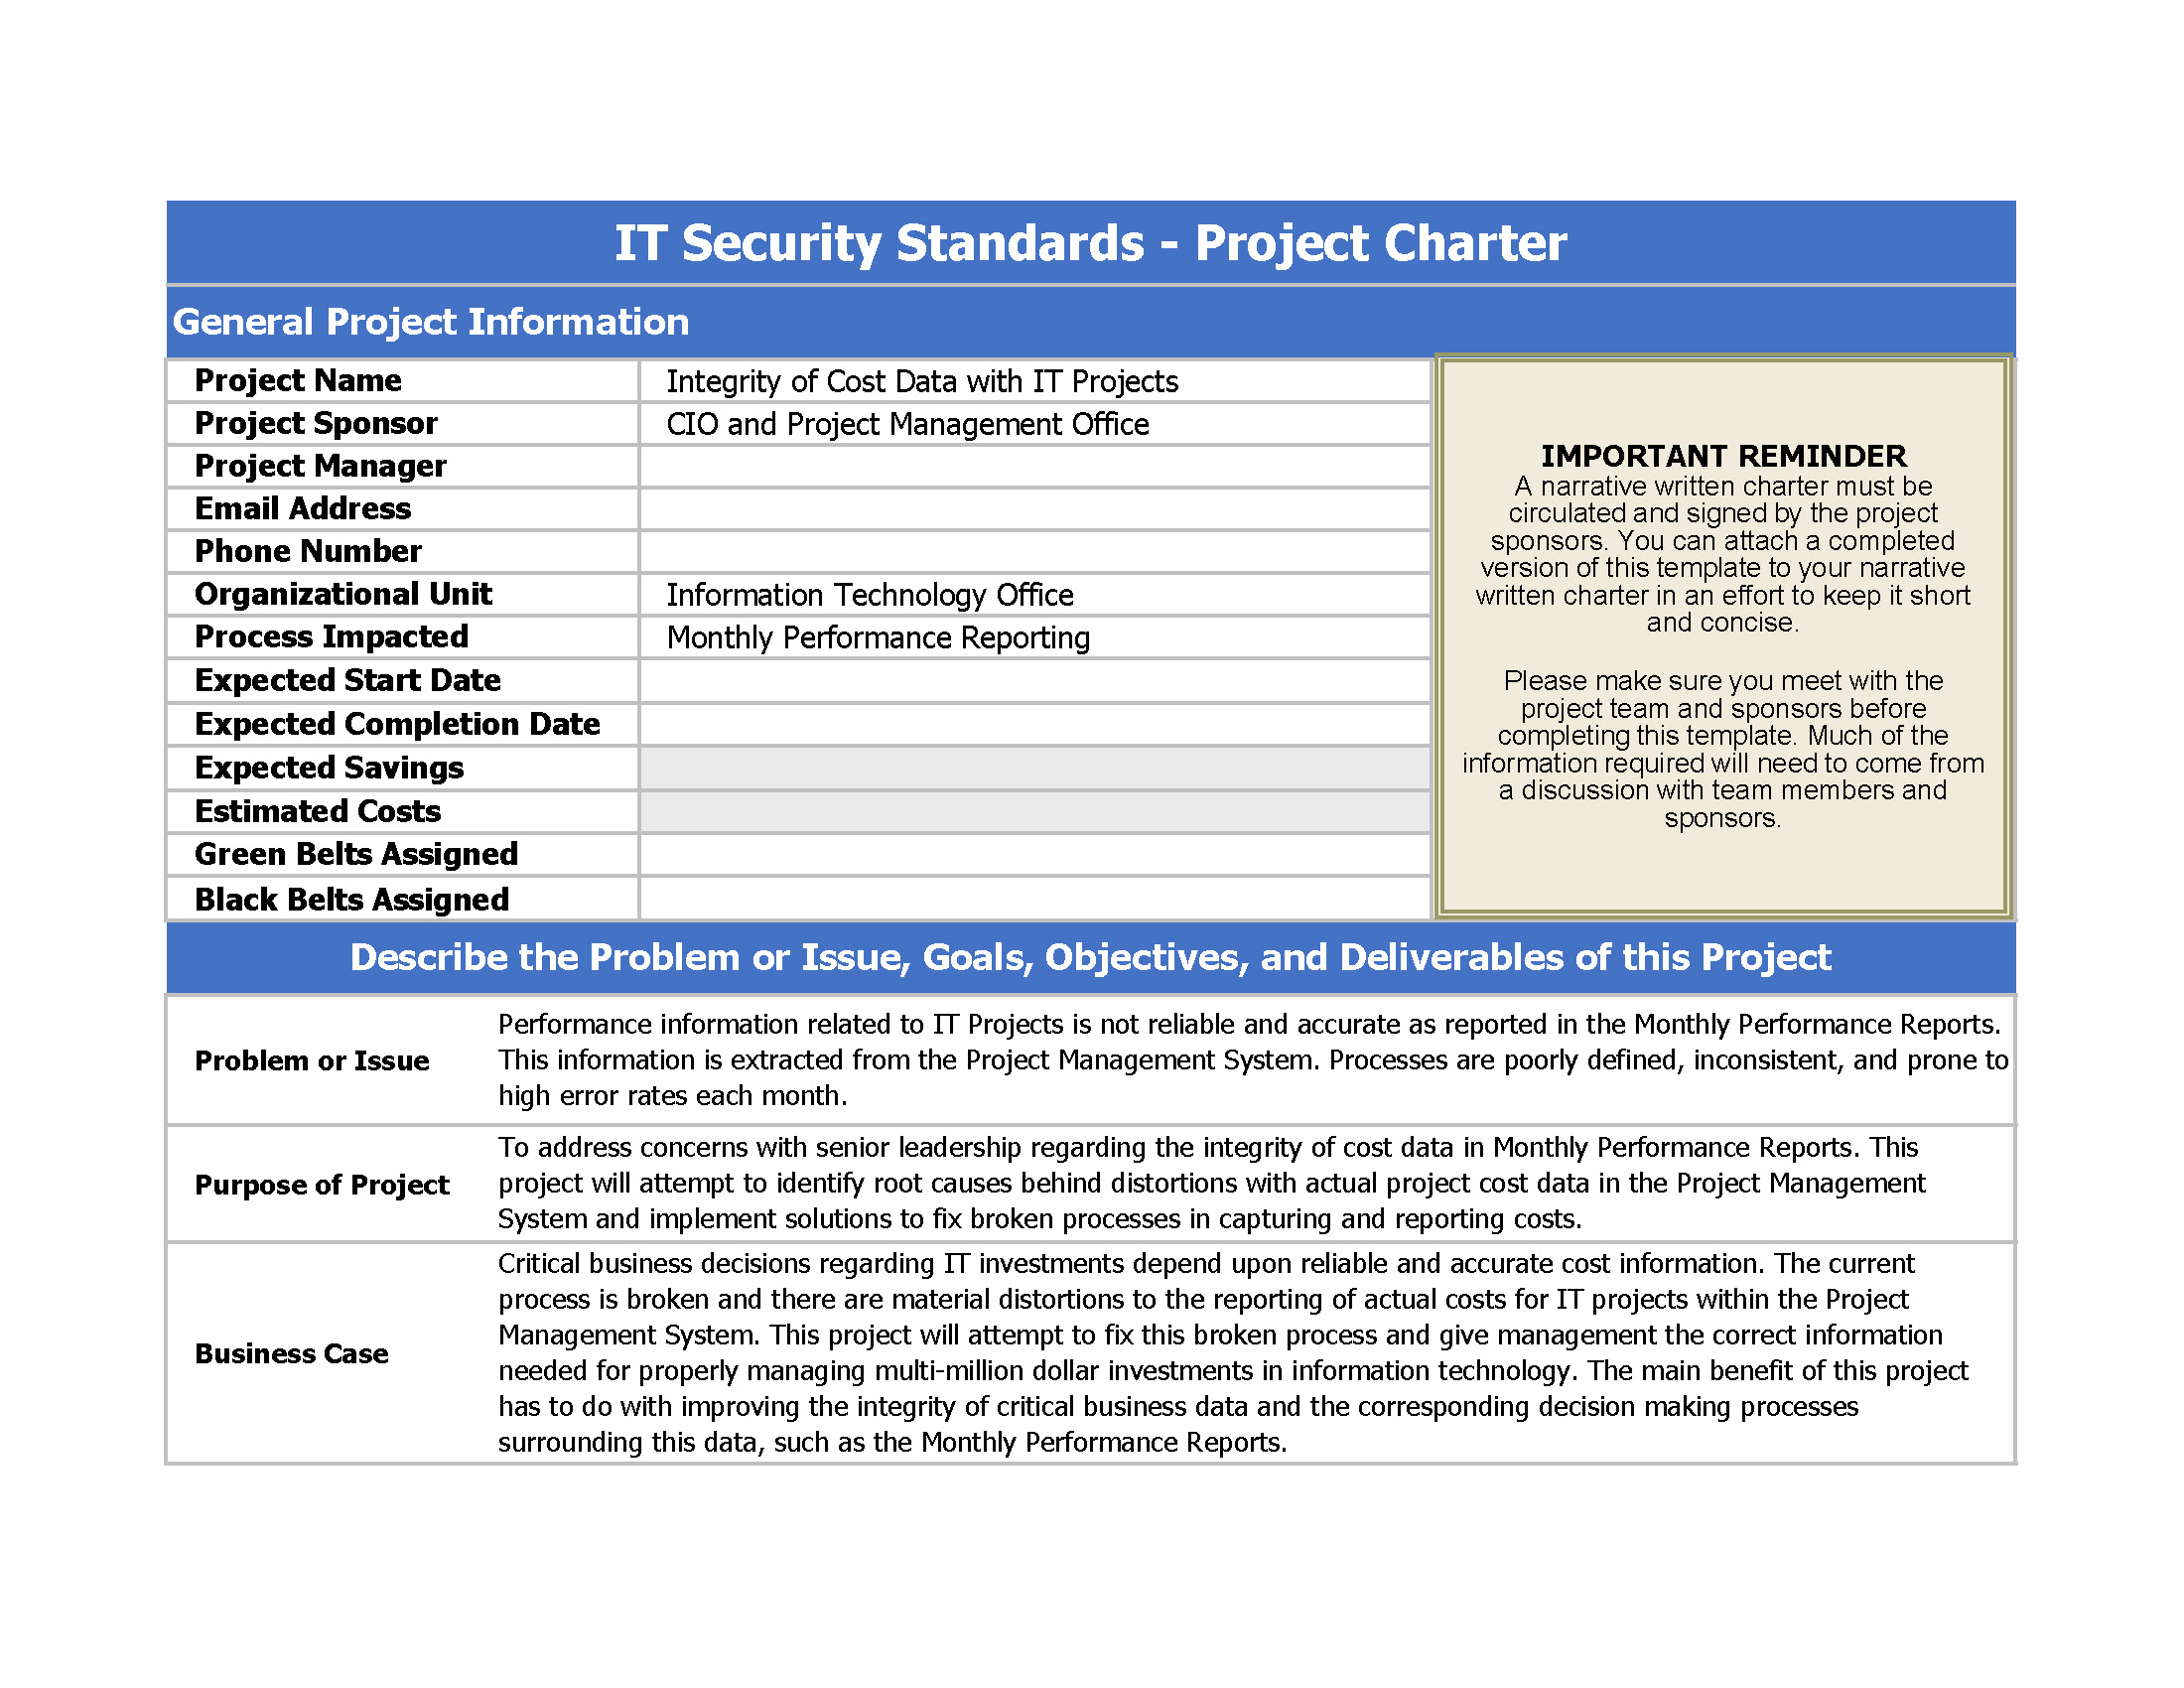 IT Security Compliance Project Charter main image